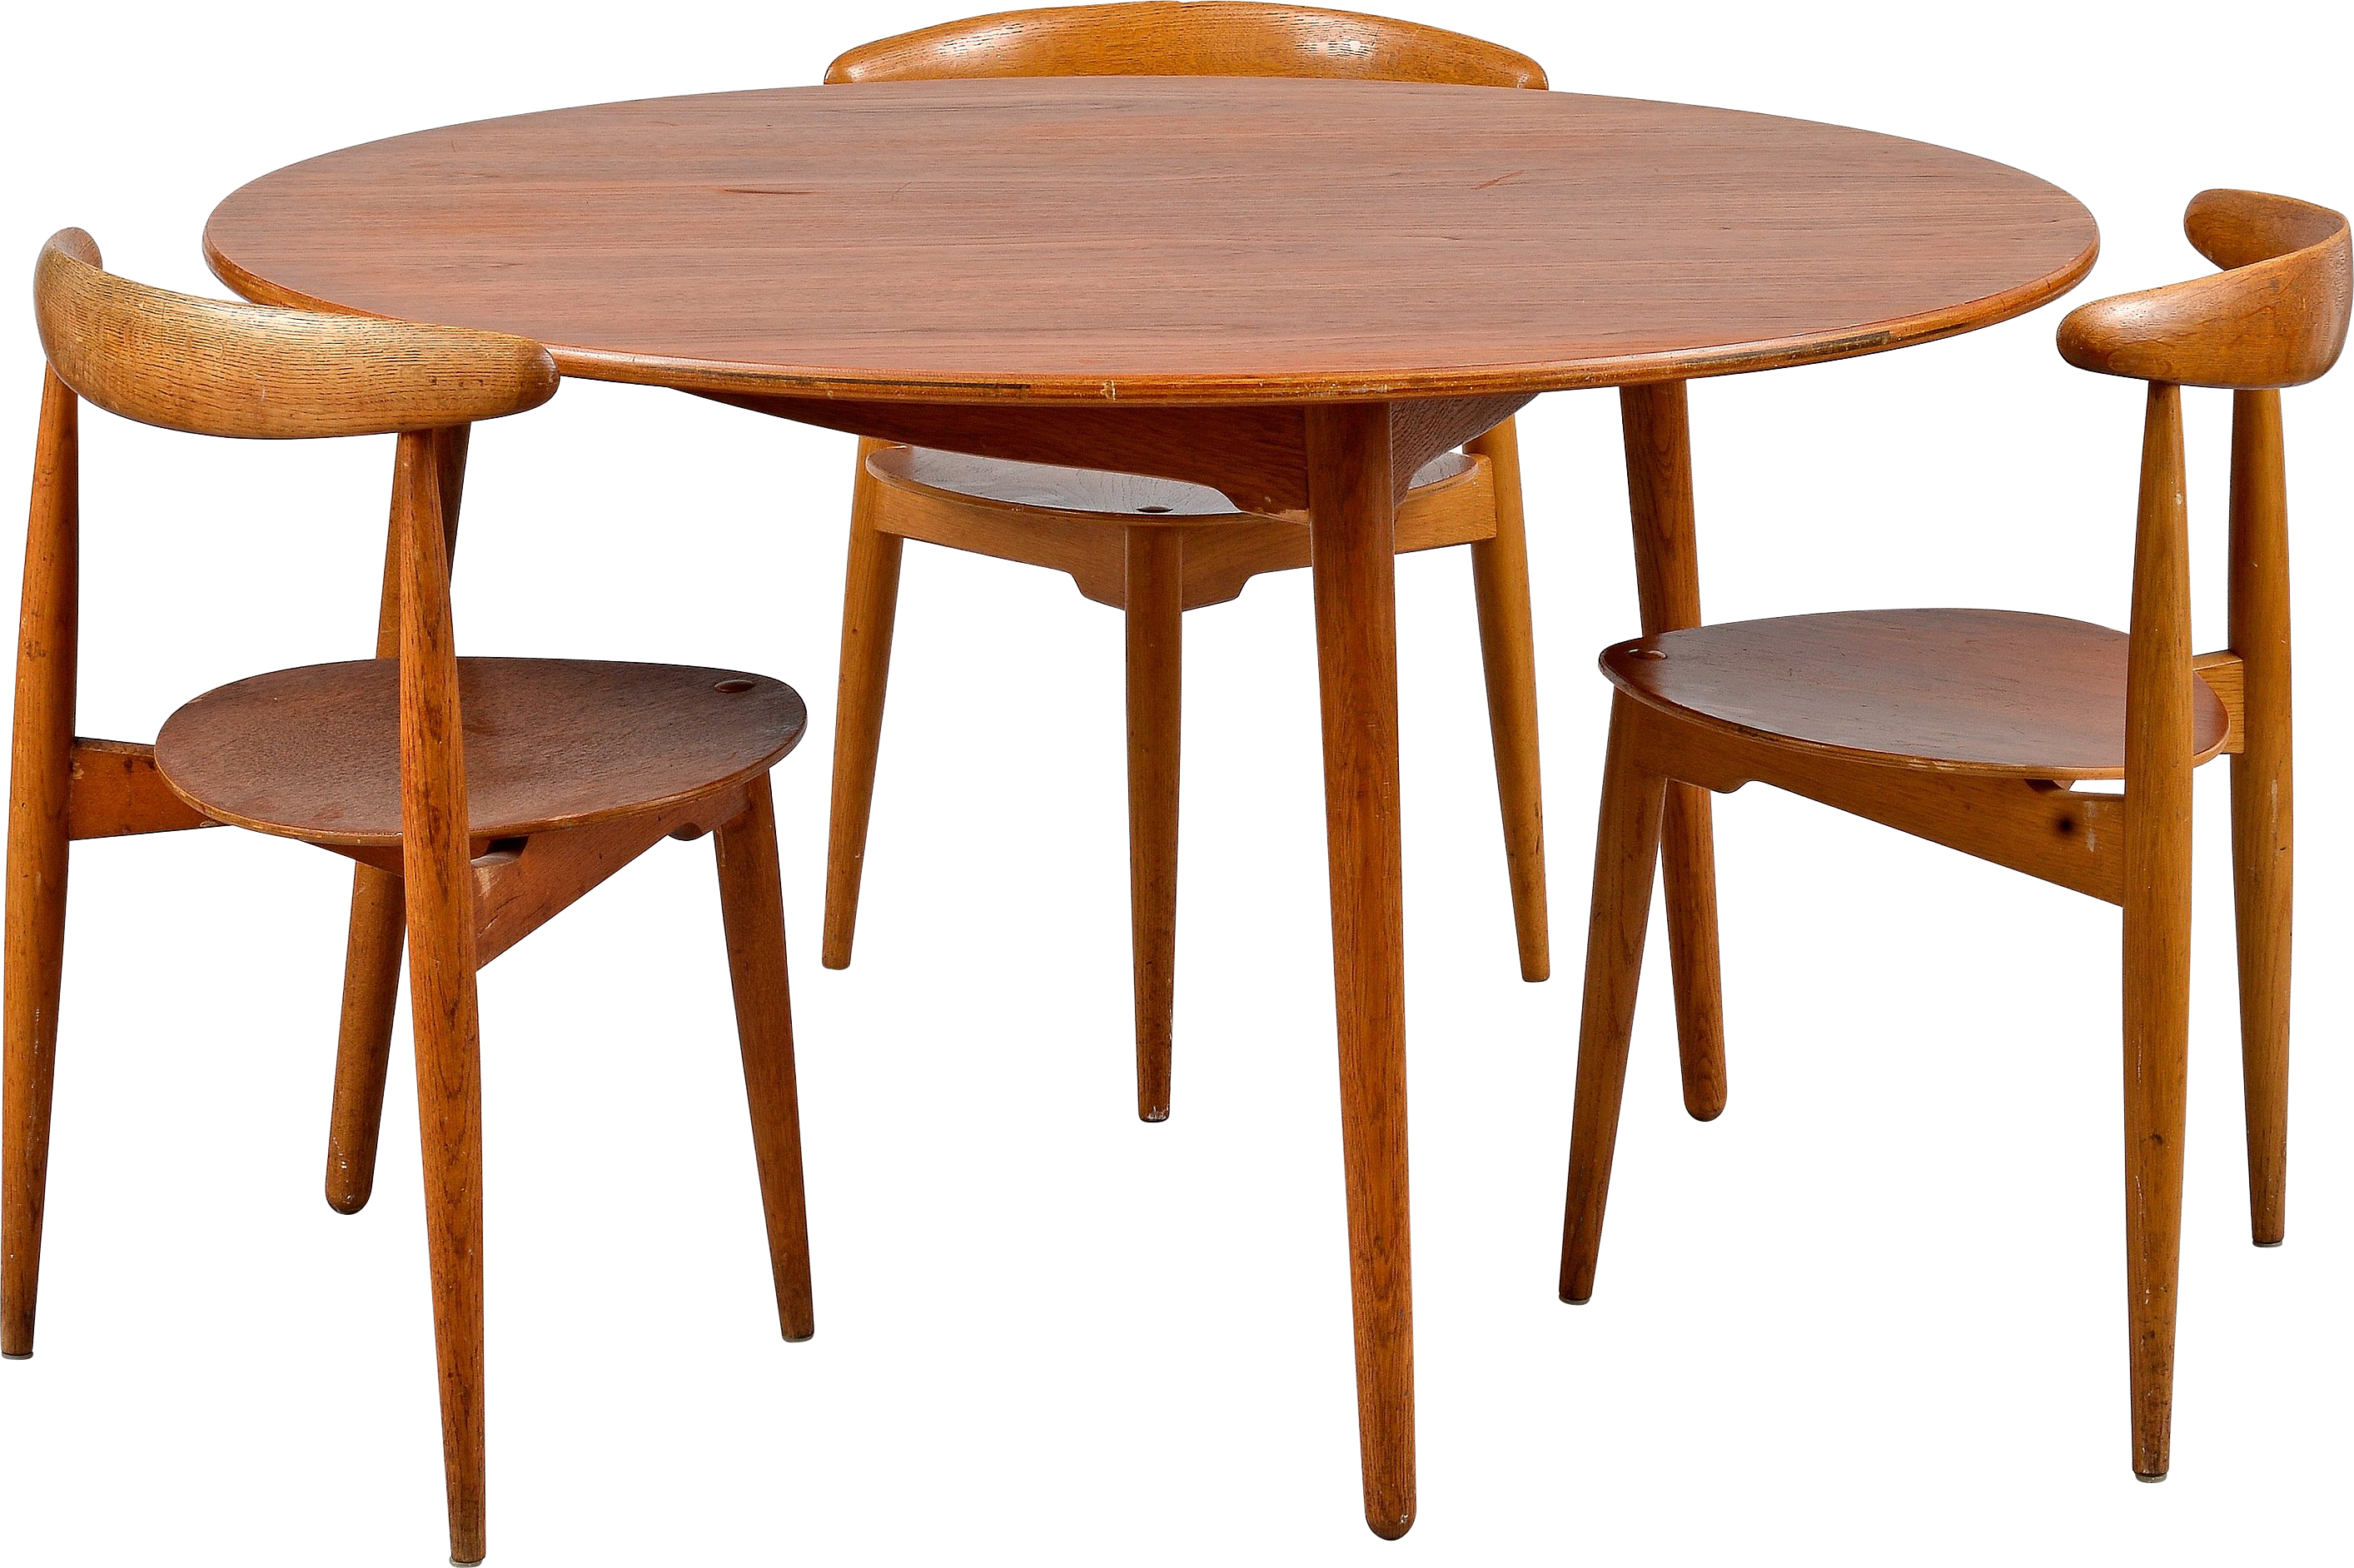 Table PNG image free download, tables PNG